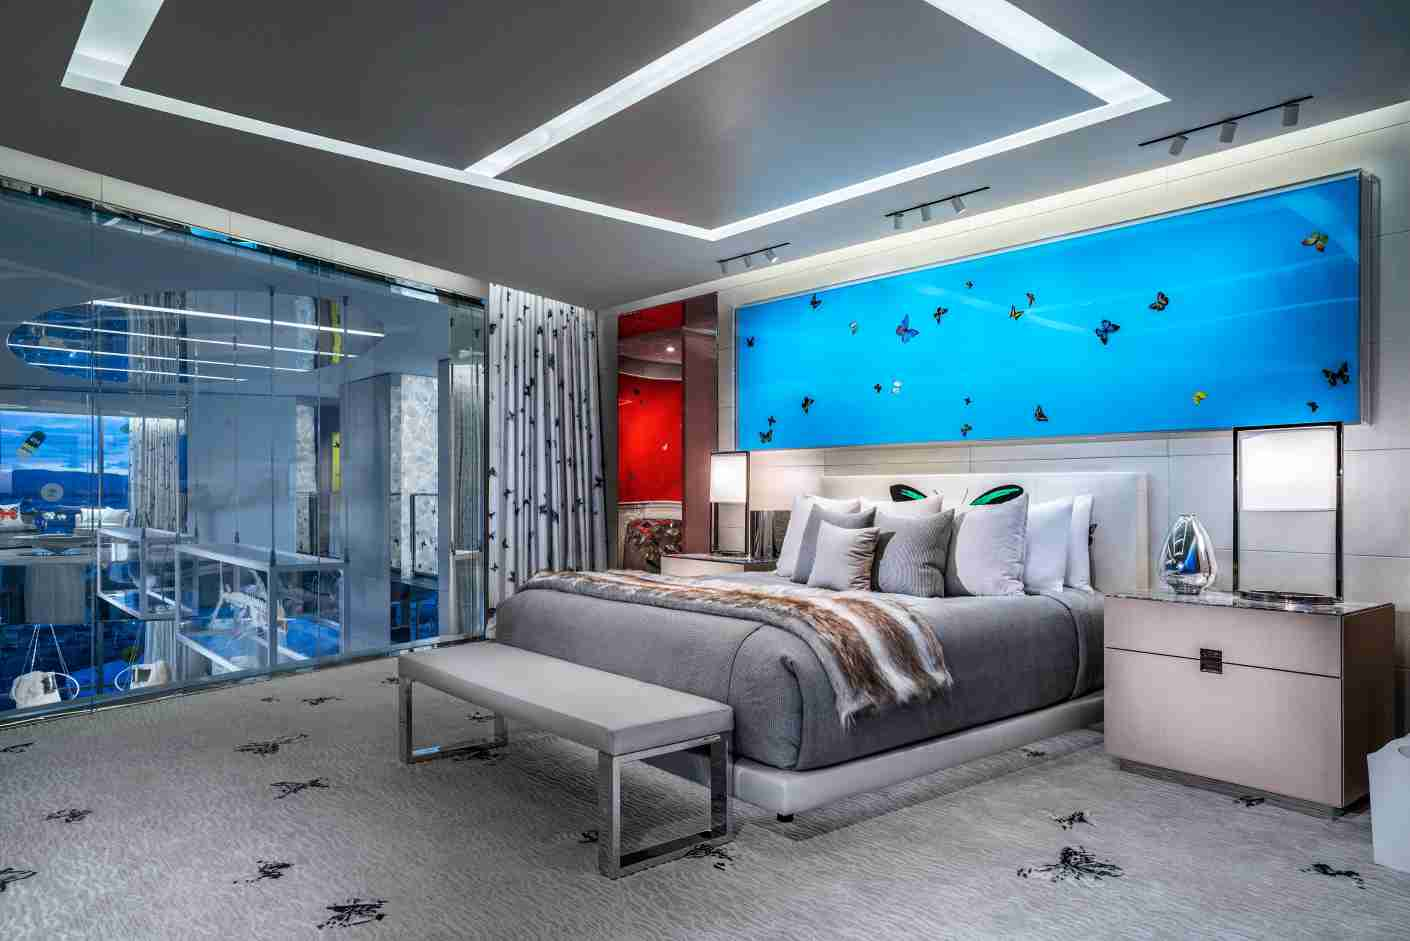 The bedrooms are adorned in butterfly motifs. Photo courtesy of the Palms Casino Resort.